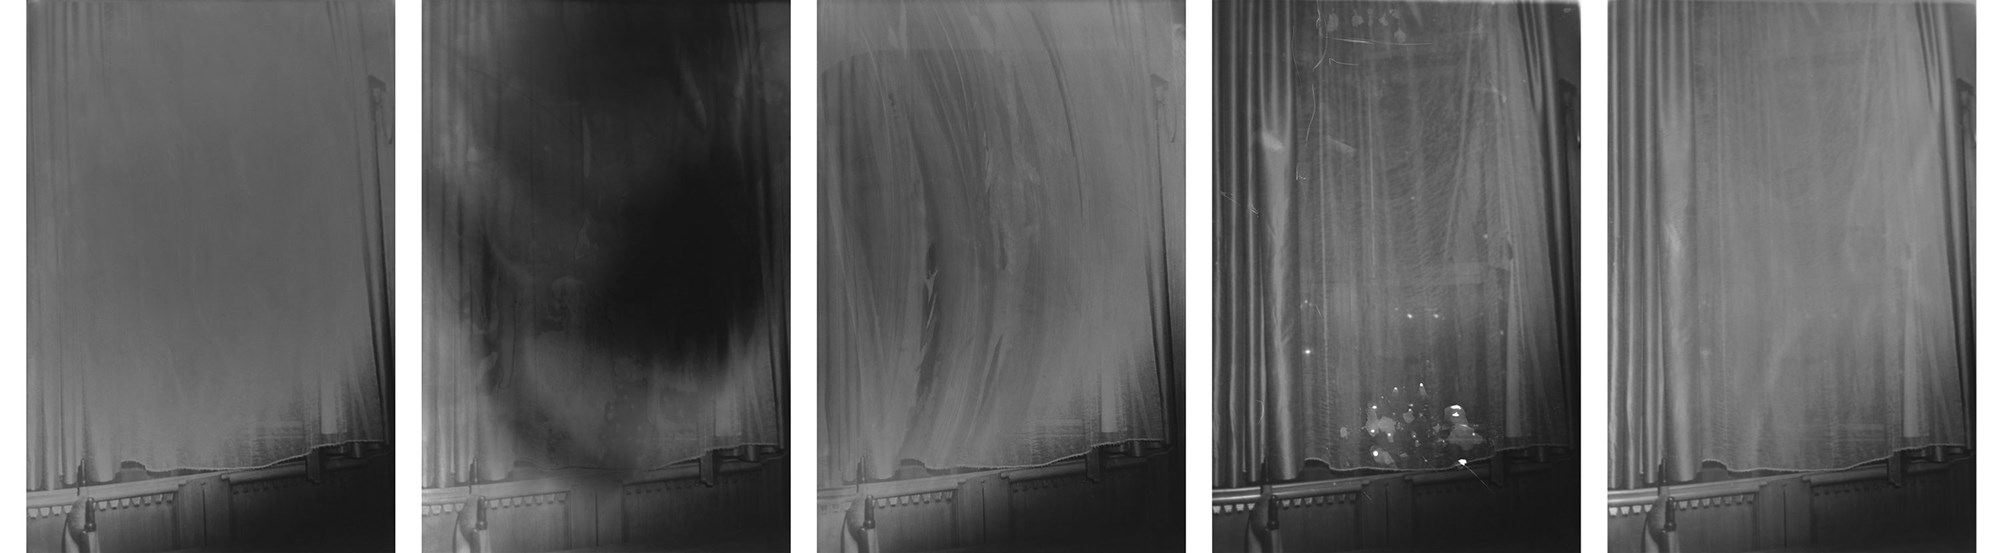 from the series 27.1 / 21.7 / 010 – 014 / 2014© Dirk Braeckman / Courtesy of Zeno X Gallery, Antwerp